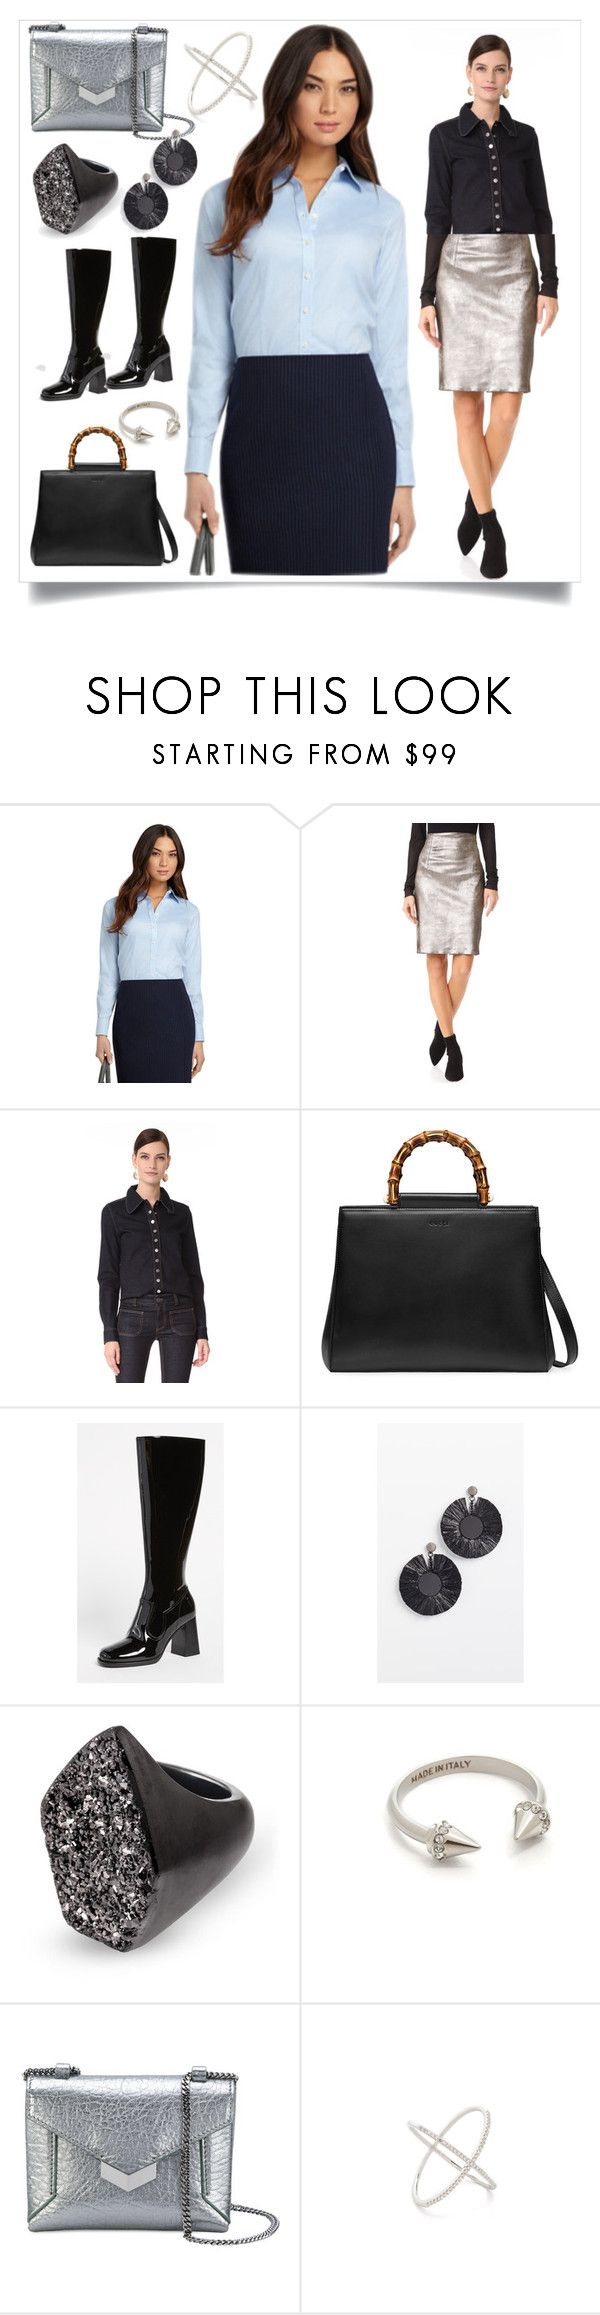 """""""French Cuff Dress Shirt..**"""" by purnima0309 ❤ liked on Polyvore featuring Brooks Brothers, ThePerfext, STELLA McCARTNEY, Gucci, Marc Jacobs, Oscar de la Renta, Kendra Scott, Vita Fede, Jimmy Choo and EF Collection"""